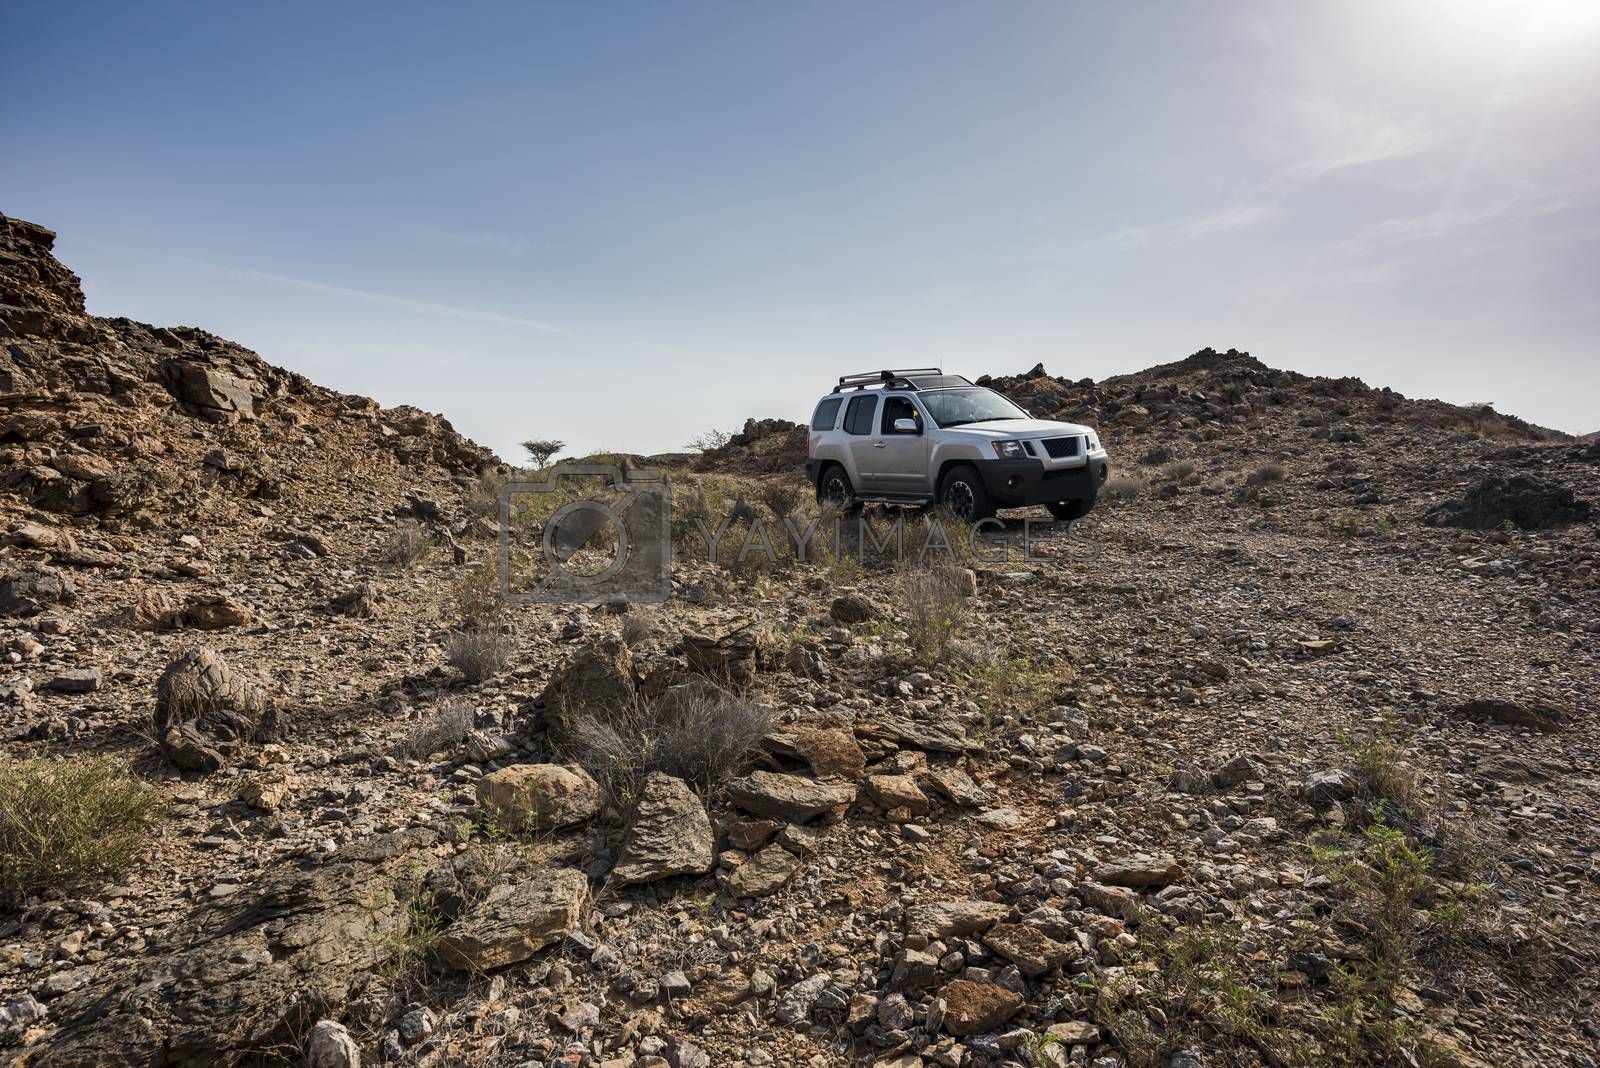 Adventure 4x4 driving rocky terrain and obstacles in arid mountains of the Sultanate of Oman, Middle East